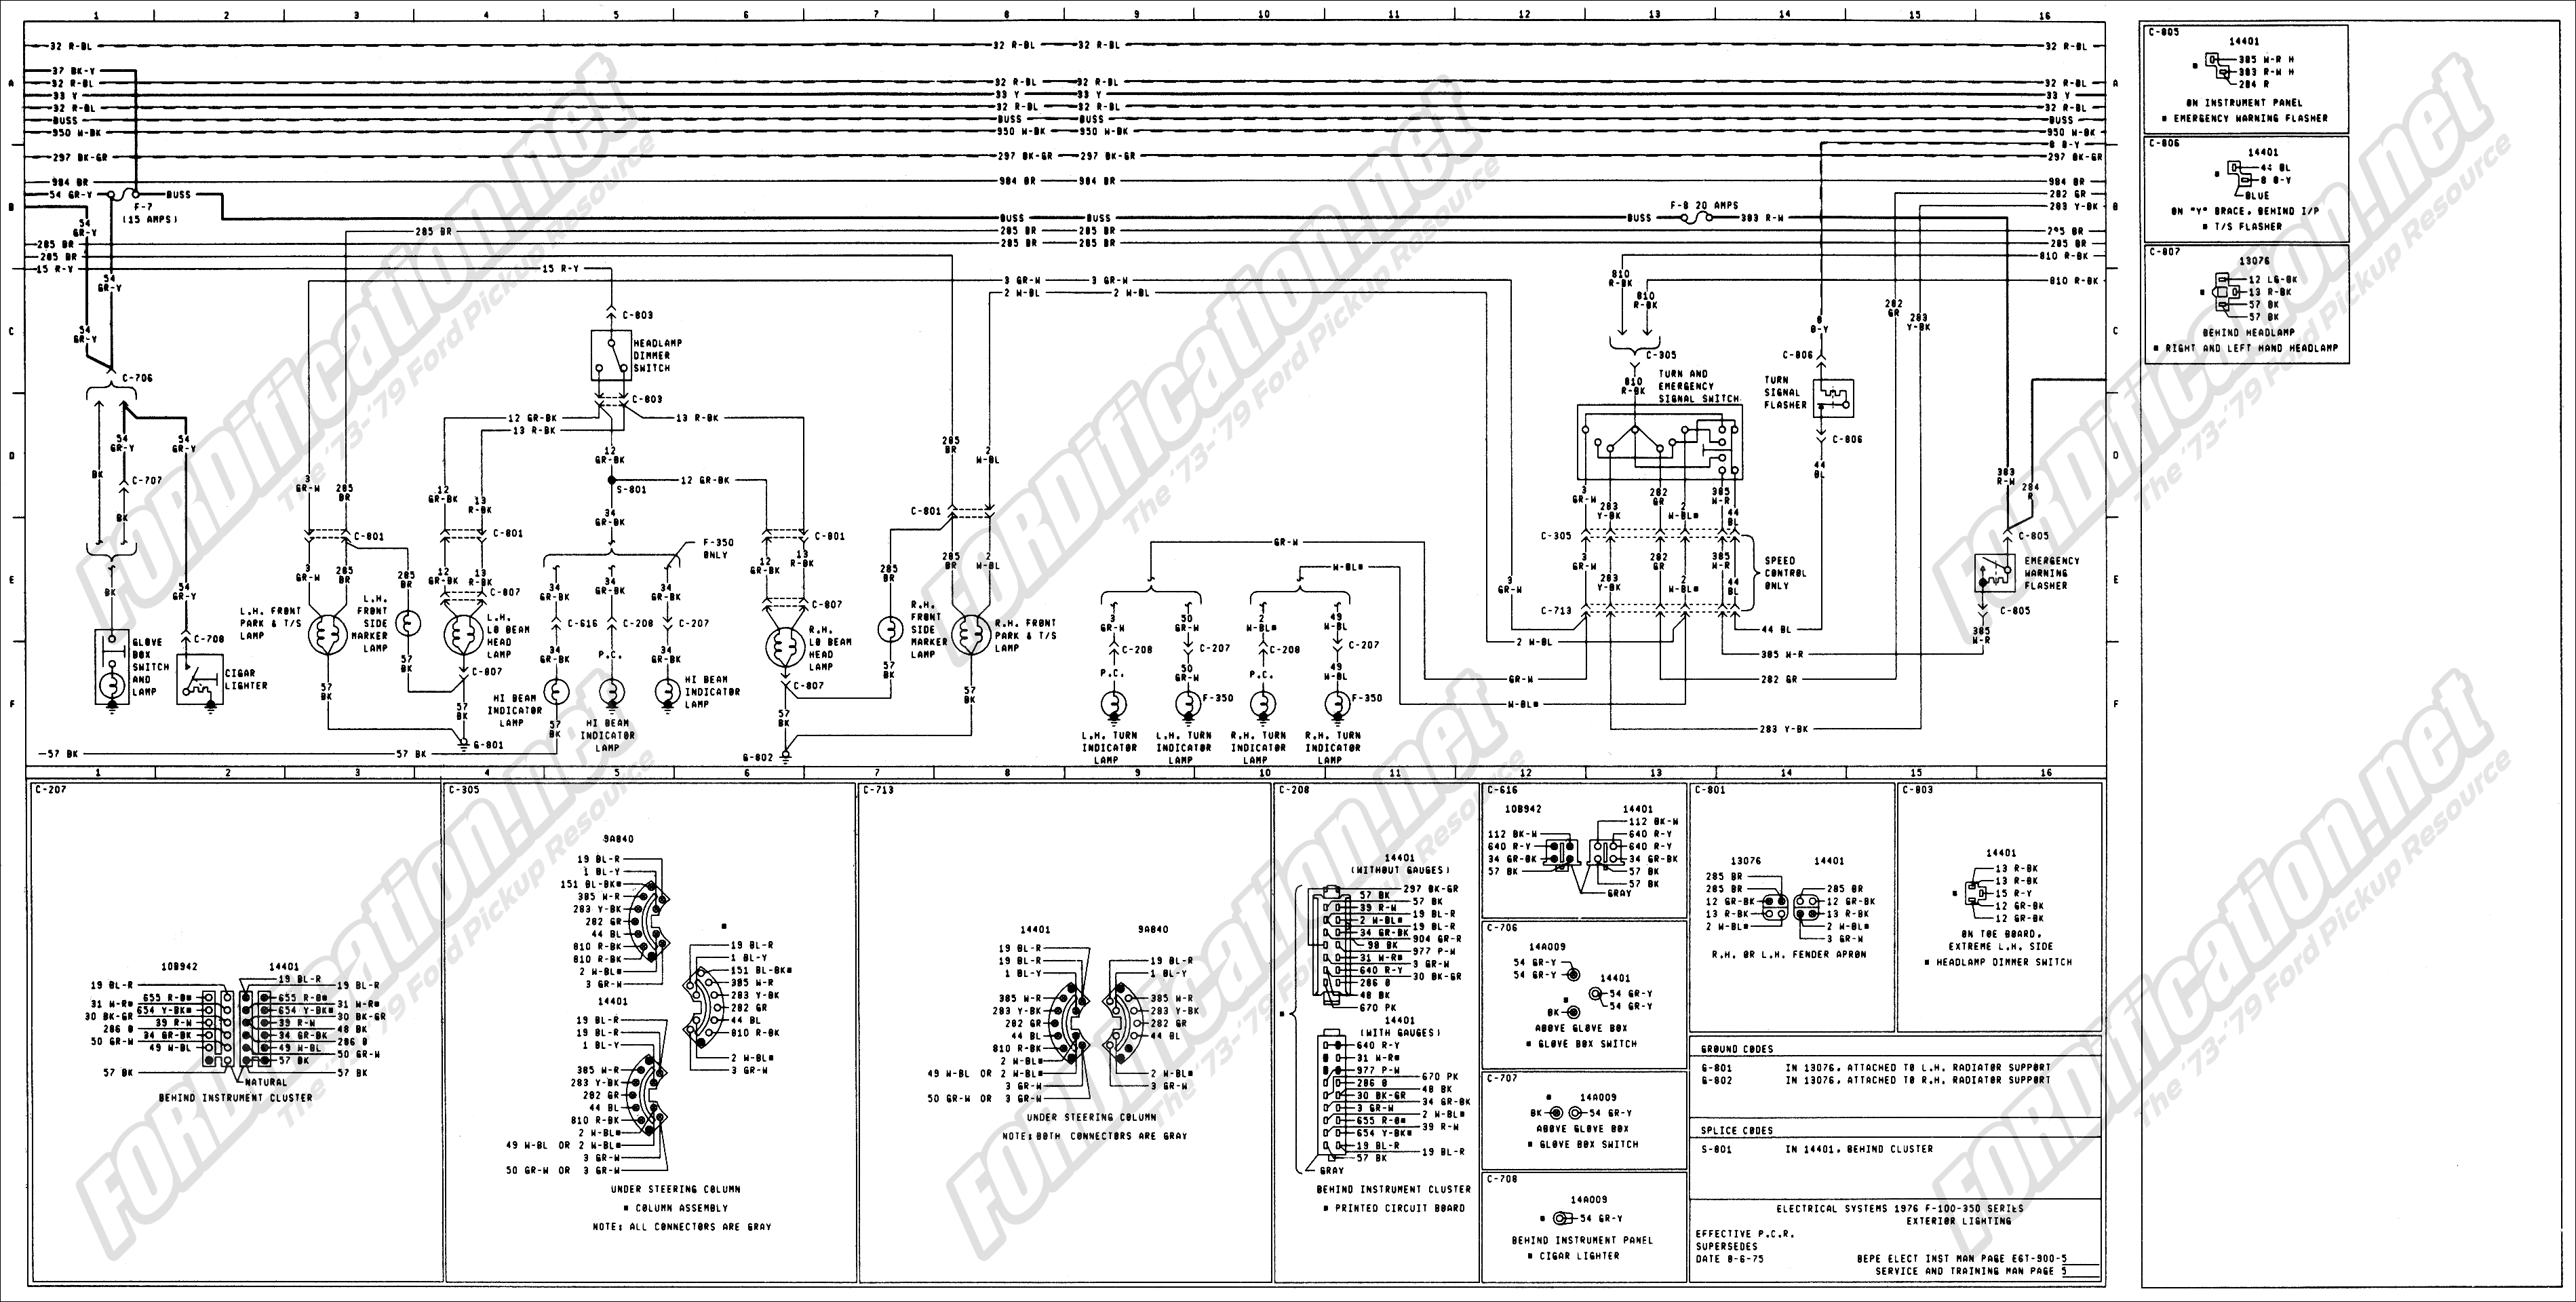 Stop Light Black And White besides 1997 379 Peterbilt Truck Wiring Diagram besides 2001 Ford F150 Ignition Wiring Diagram likewise Chevrolet Turn Signal Wiring Diagram furthermore 1954 Chevy Truck Ignition Swit. on 1955 chevy turn signal wiring diagram